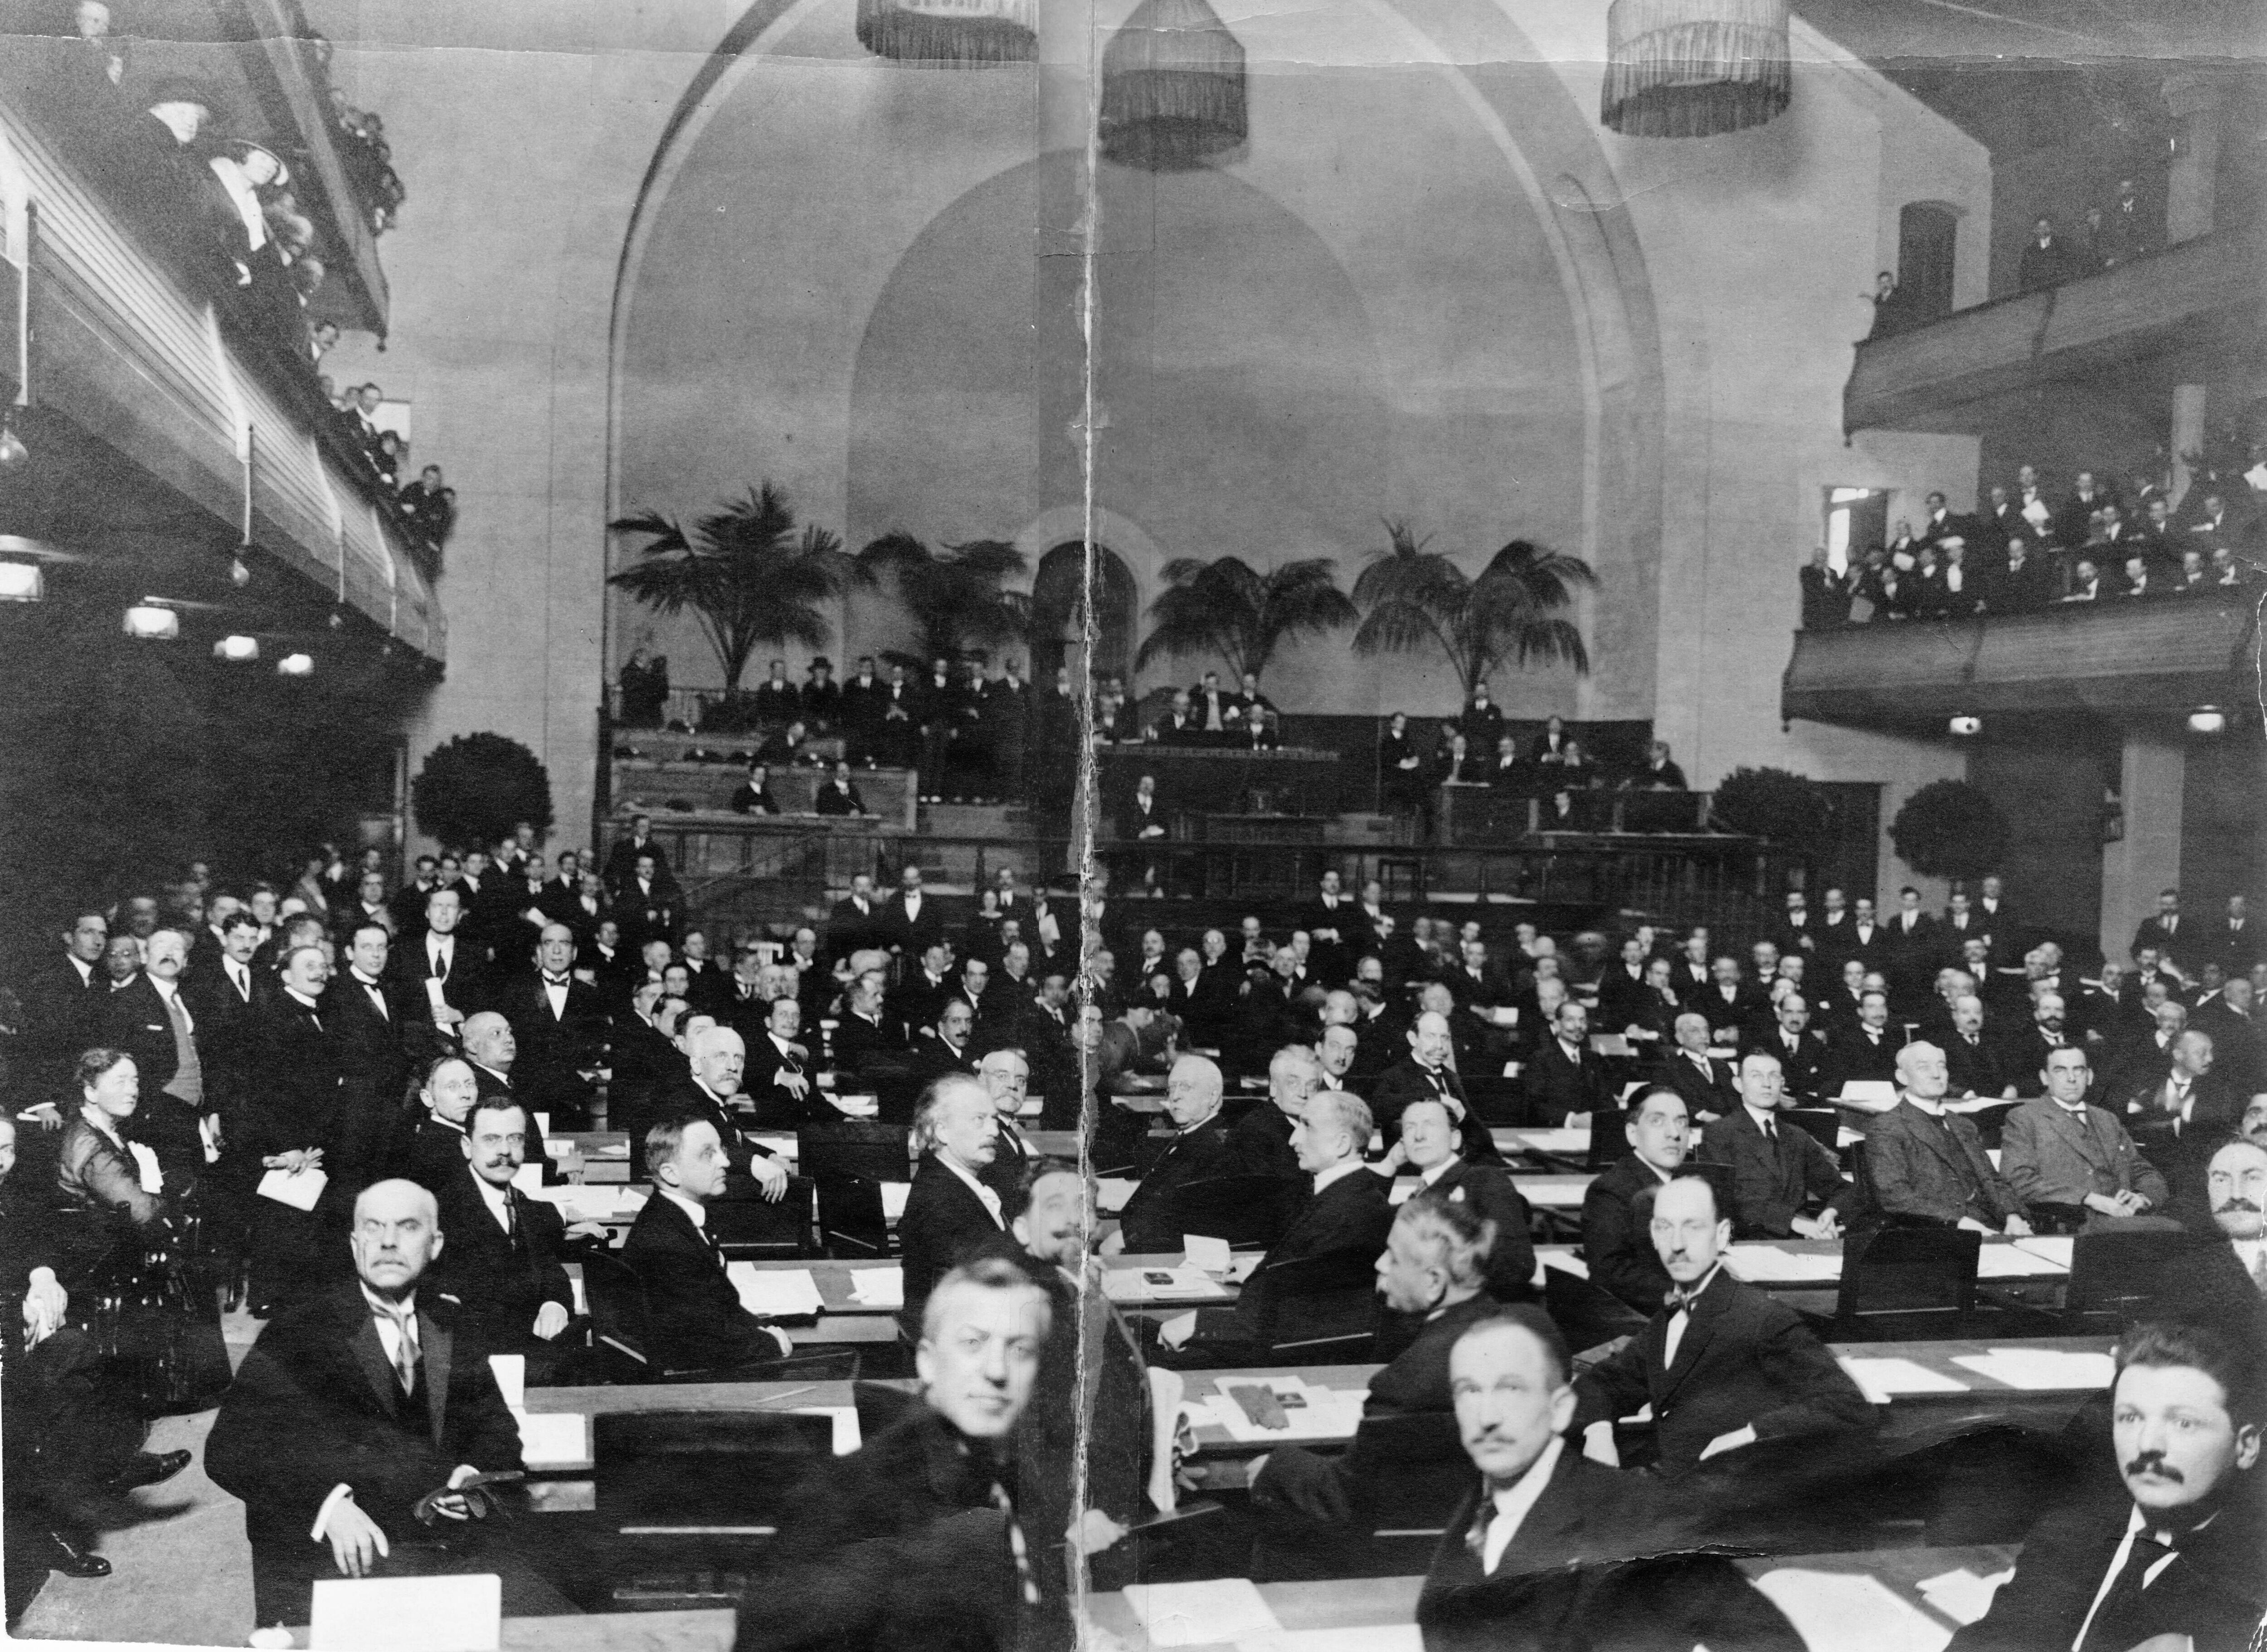 1st meeting of the Assembly, November 15th 1920, Geneva - Copyright A11 Photographie Boissonnas, Genève